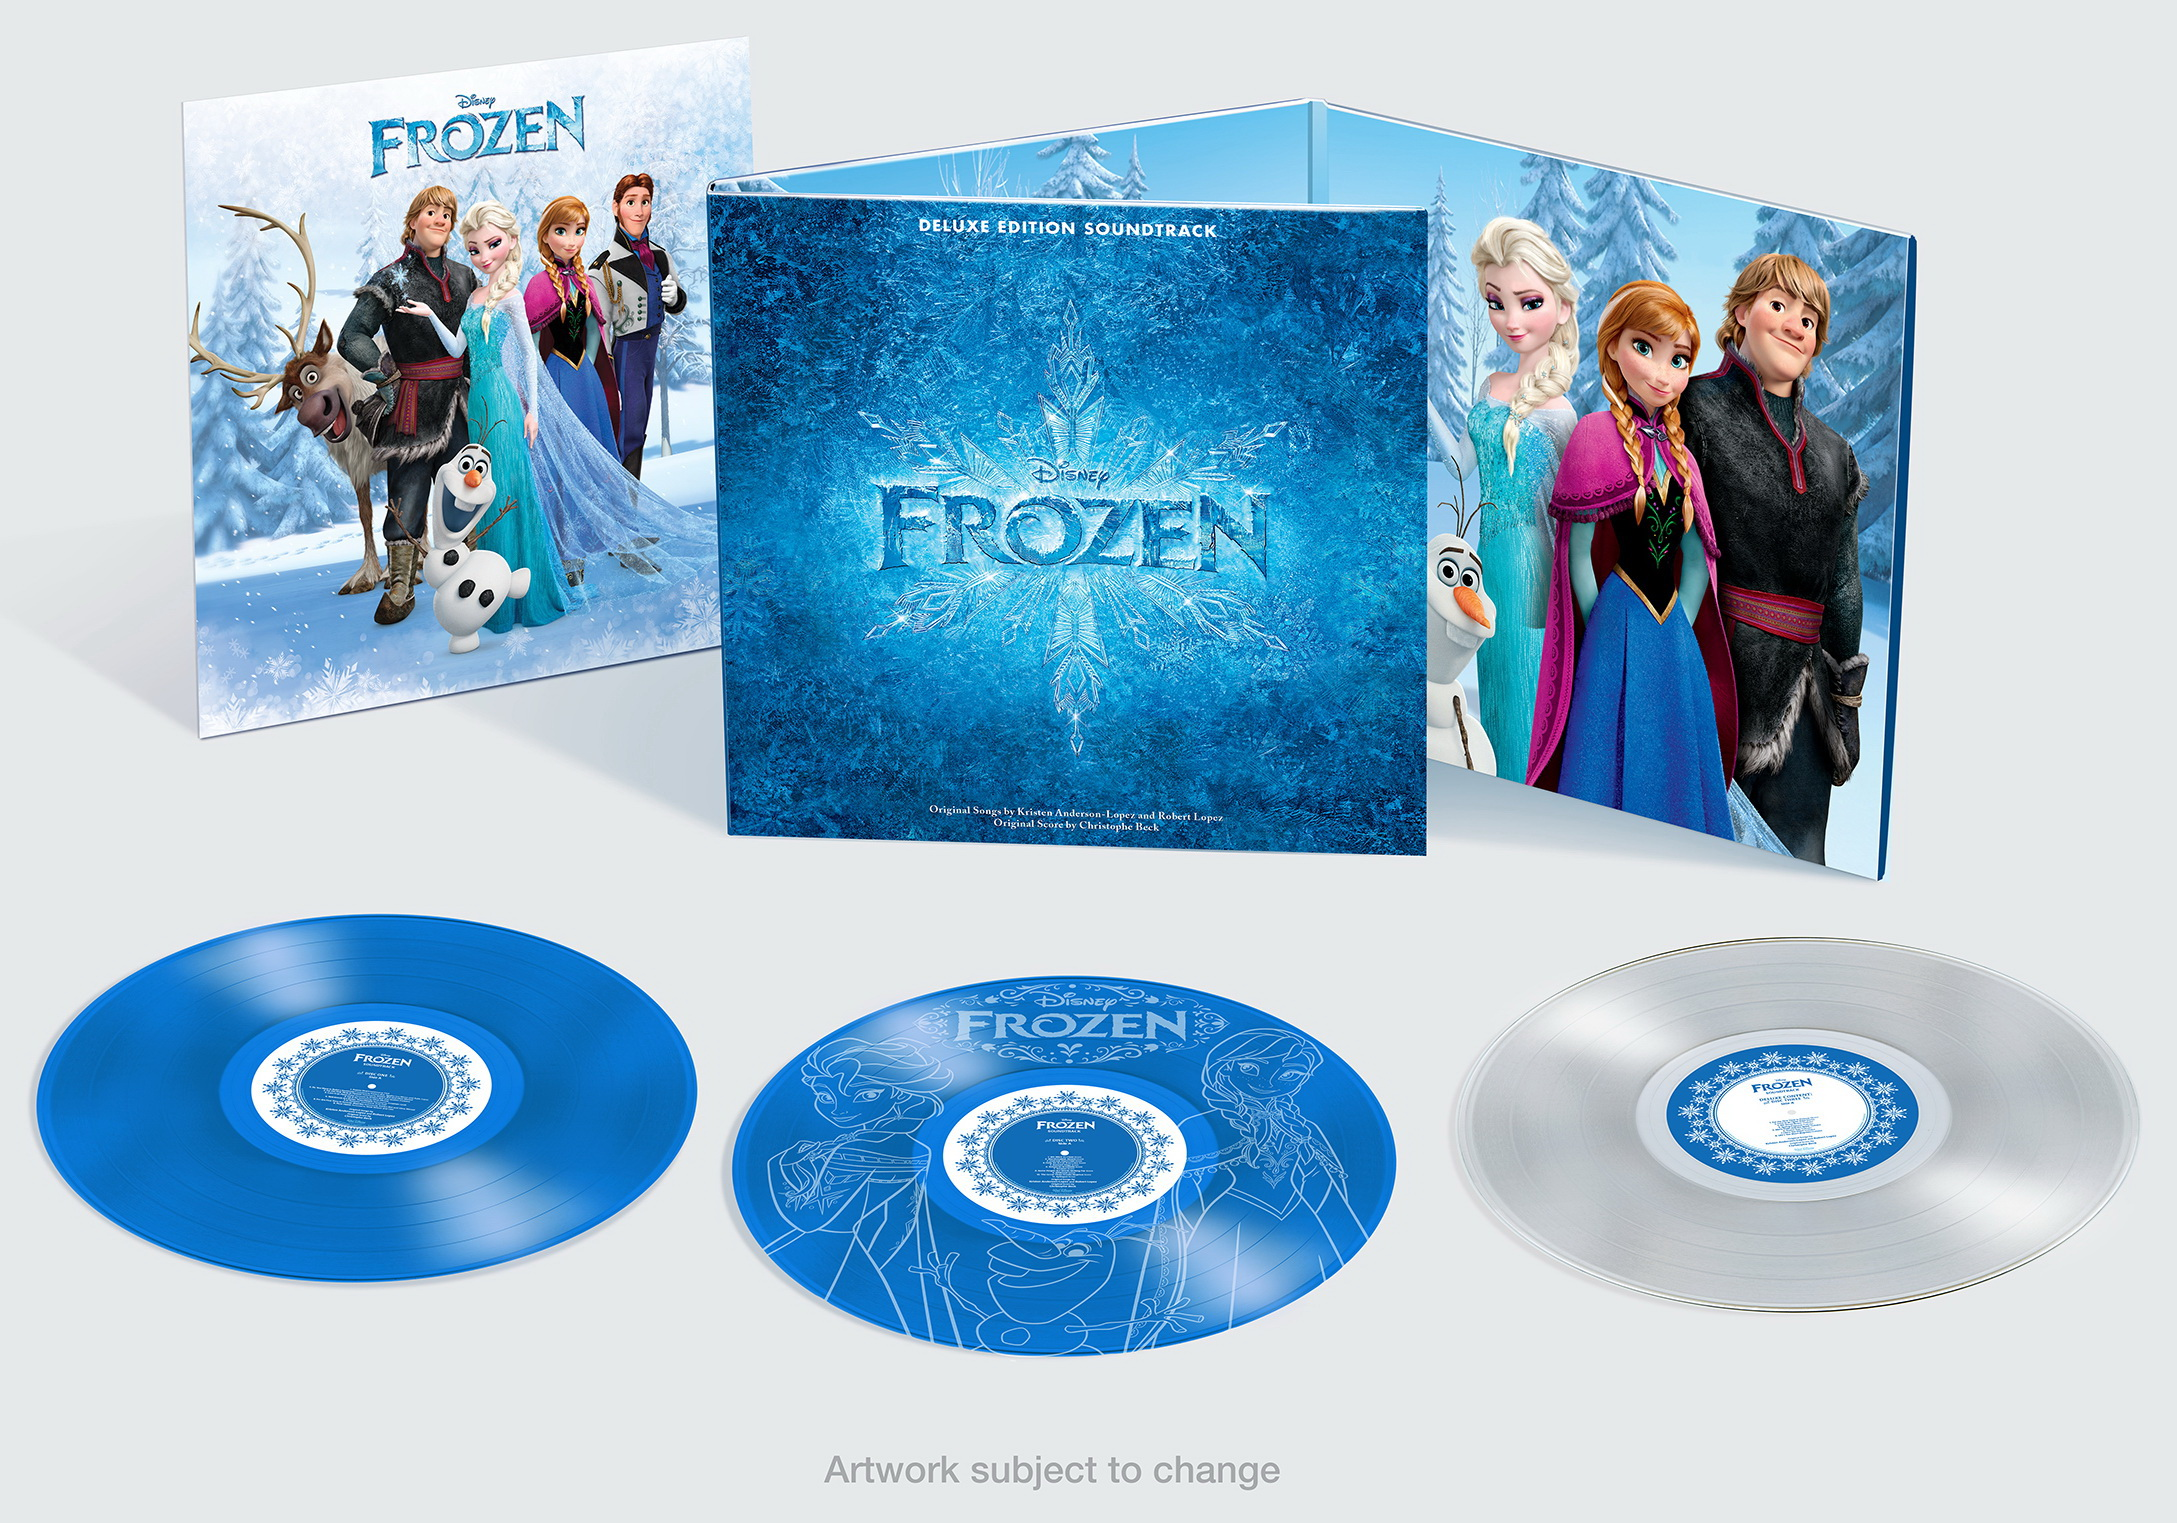 Frozen Cancion Español Libre Soy Disney Frozen Soundtrack Deluxe Edition On Vinyl Limited